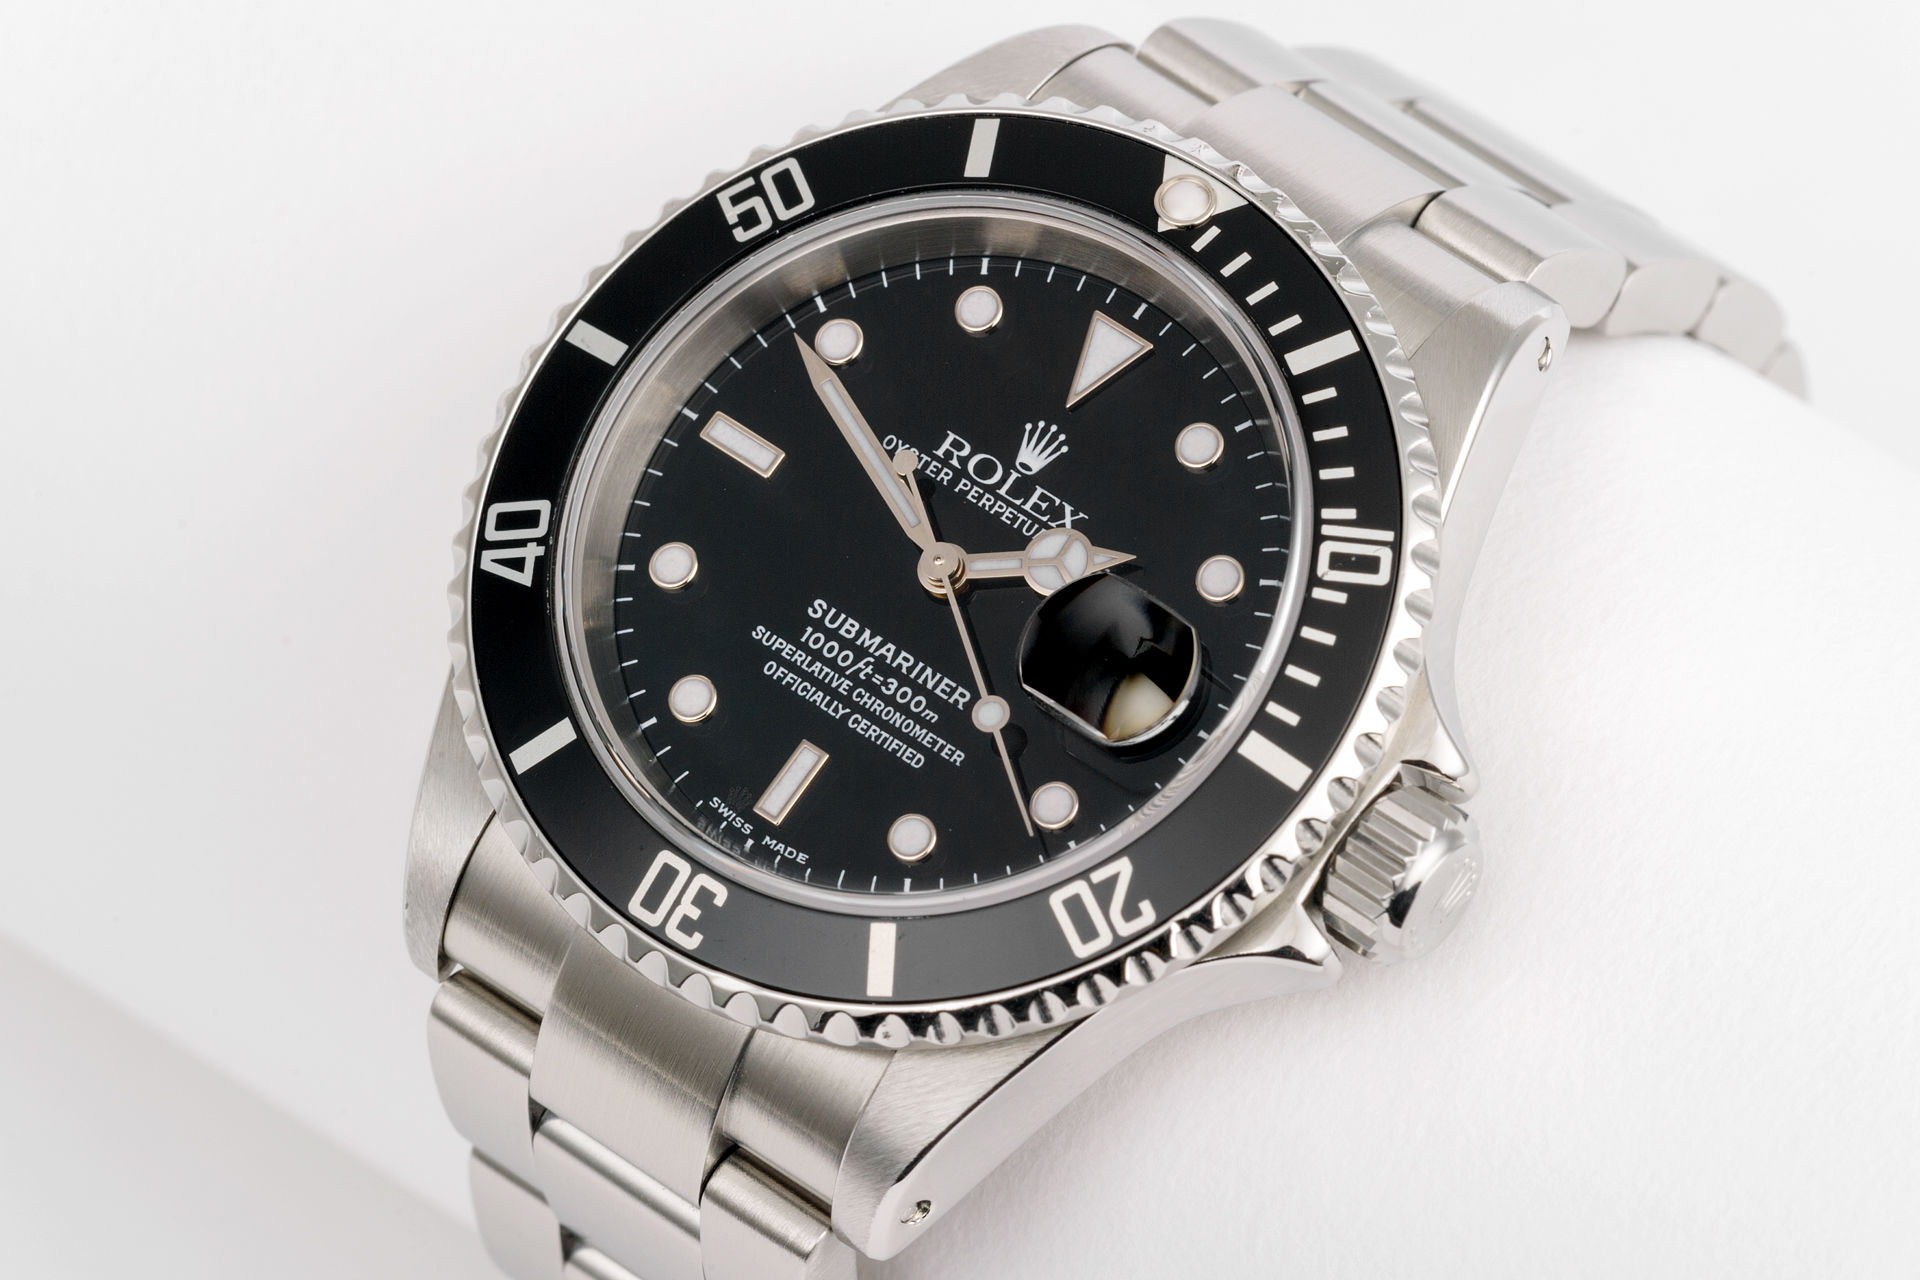 ref 16610 | Rolex Warranty to 2020 | Rolex Submariner Date